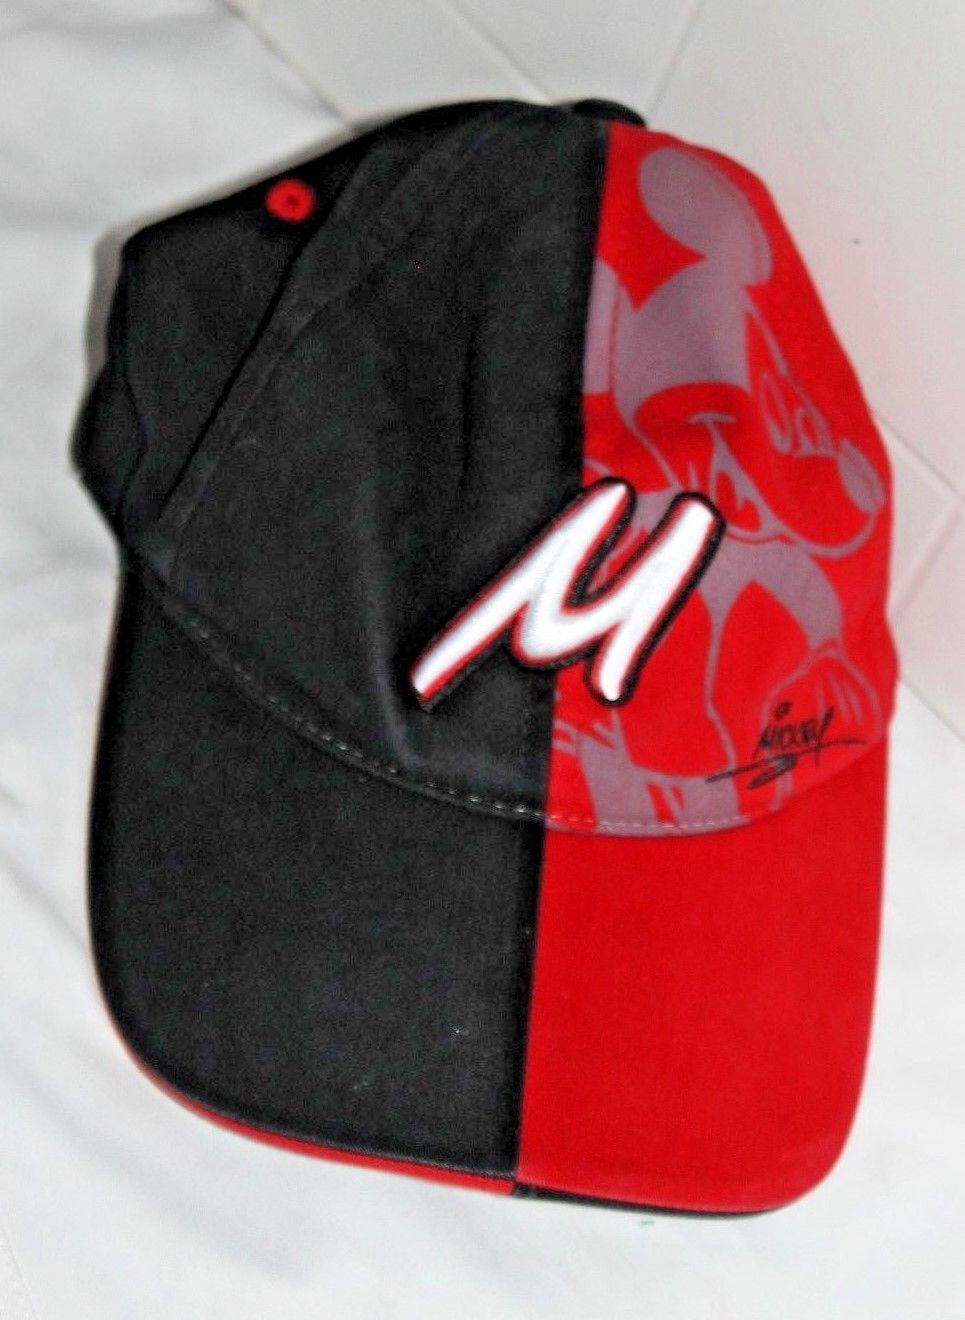 94e392214a742 57. 57. Previous. Walt Disney World Mickey Mouse Red and Black Baseball Cap  Hat · Walt Disney World ...